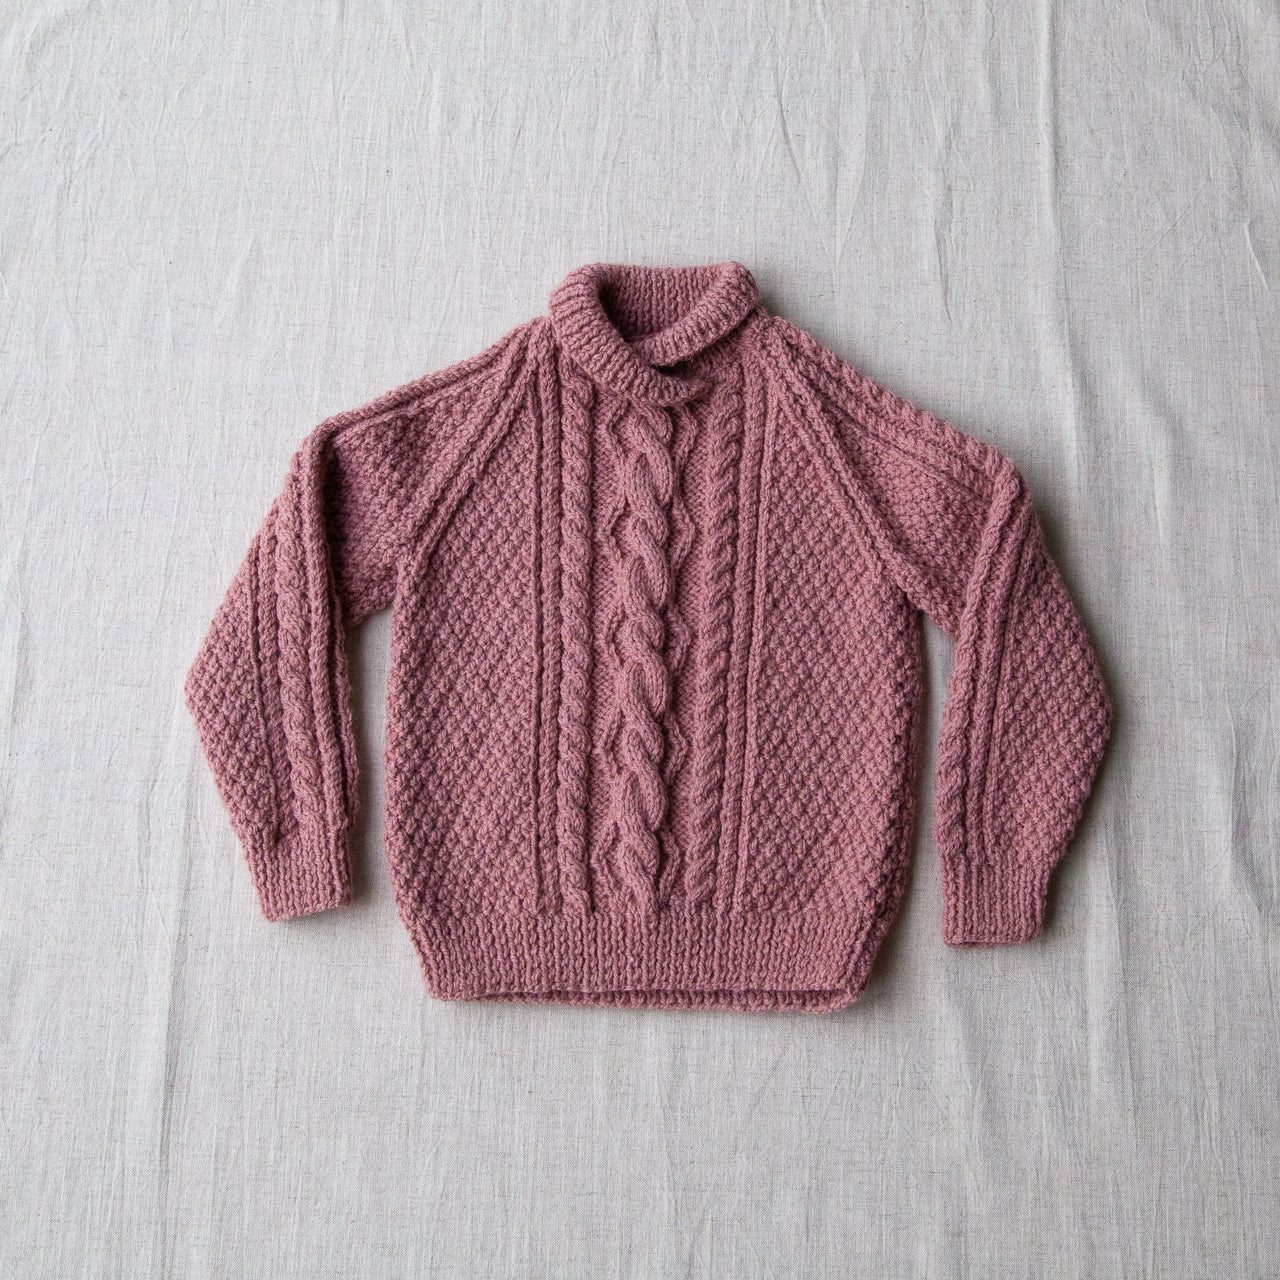 Knitted Jumper | 18/24M